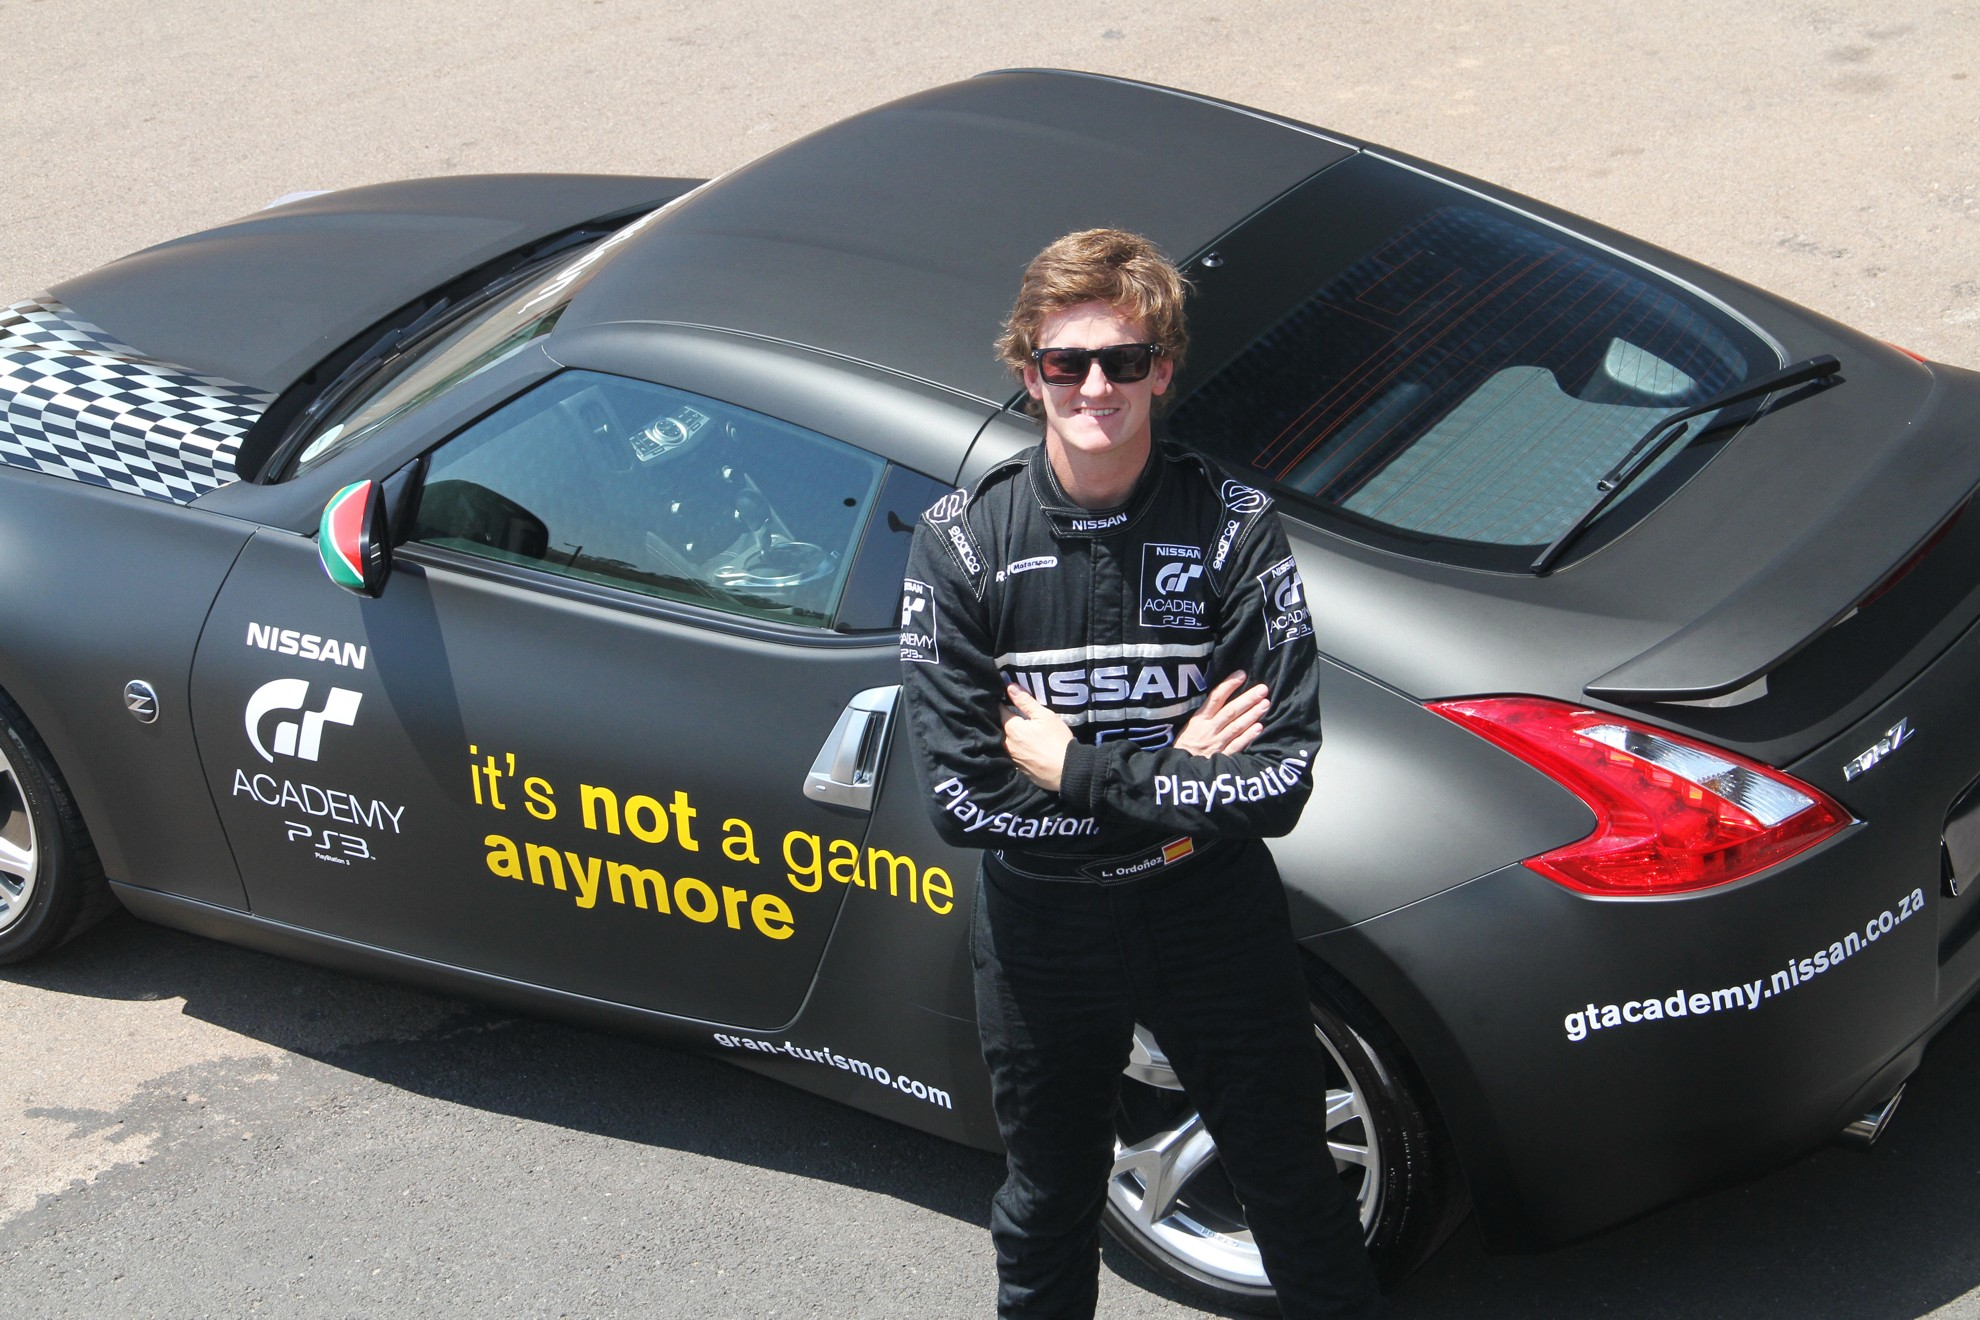 South Africa GT Academy